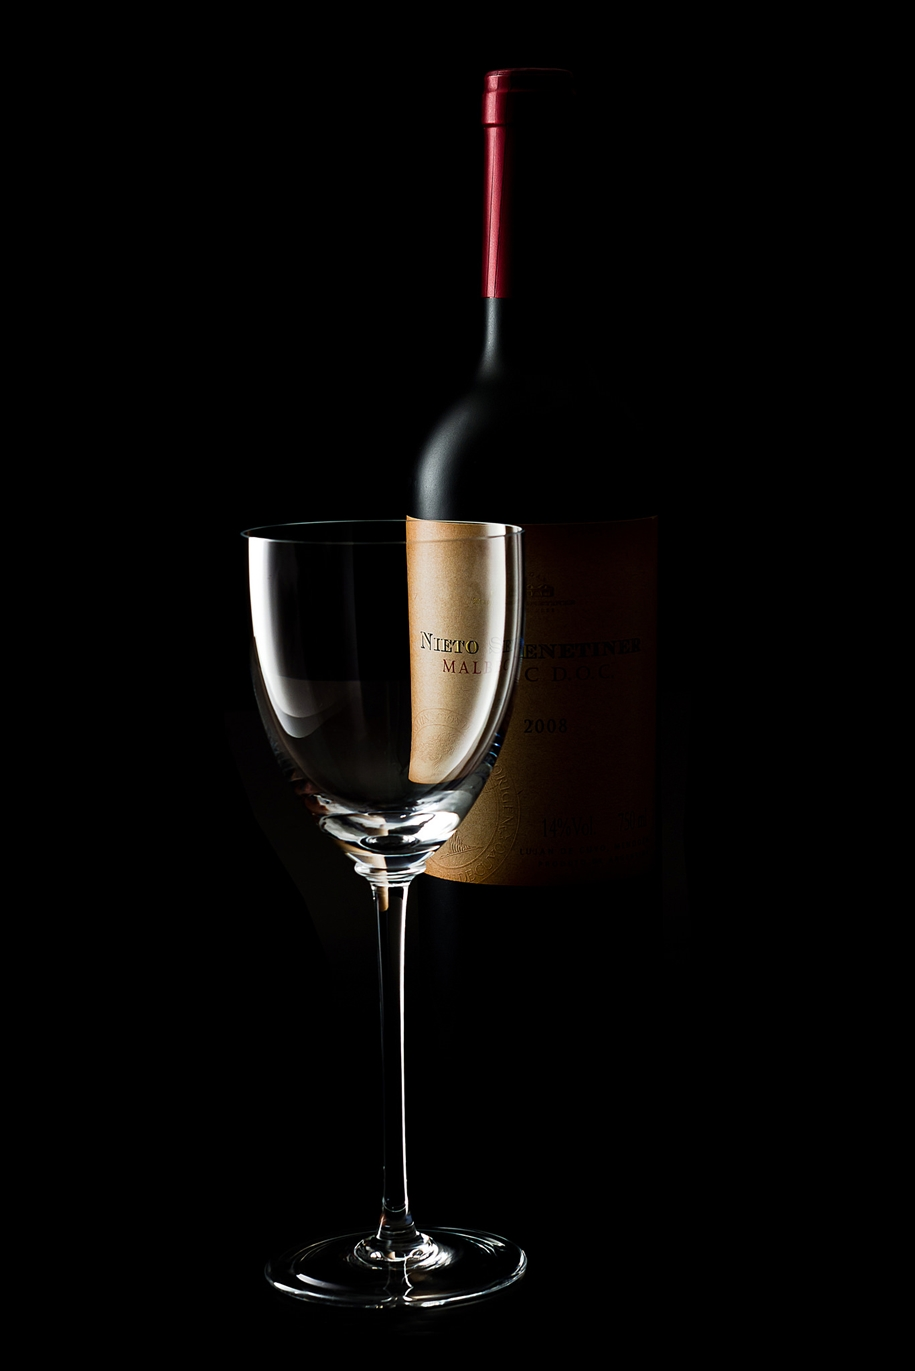 Elegant still life photography by Luiz Laercio 12